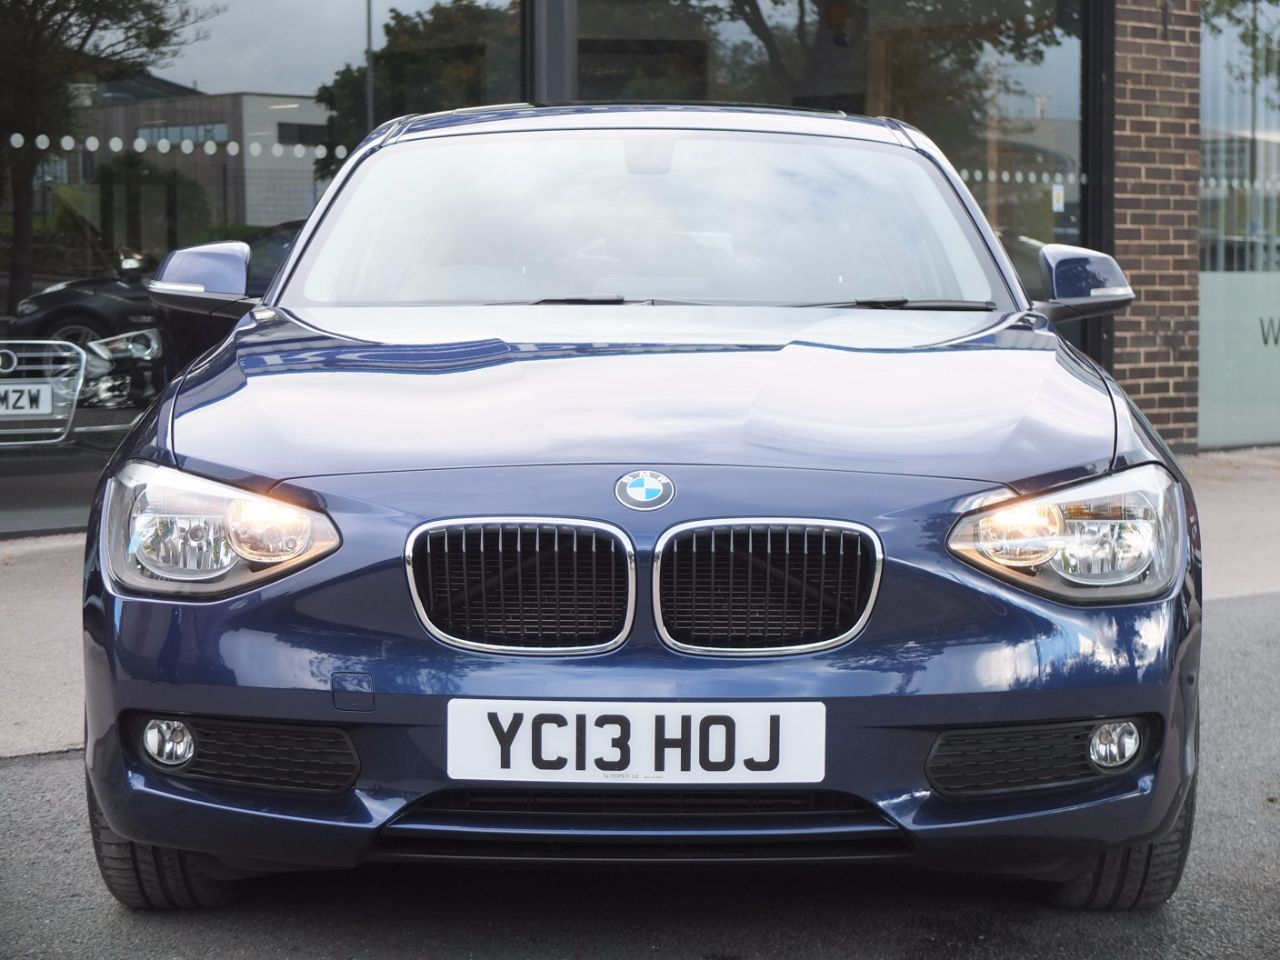 BMW 1 Series 1.6 Sports Hatch 116i SE 5 door Automatic Hatchback Petrol Deep Sea Blue Metallic